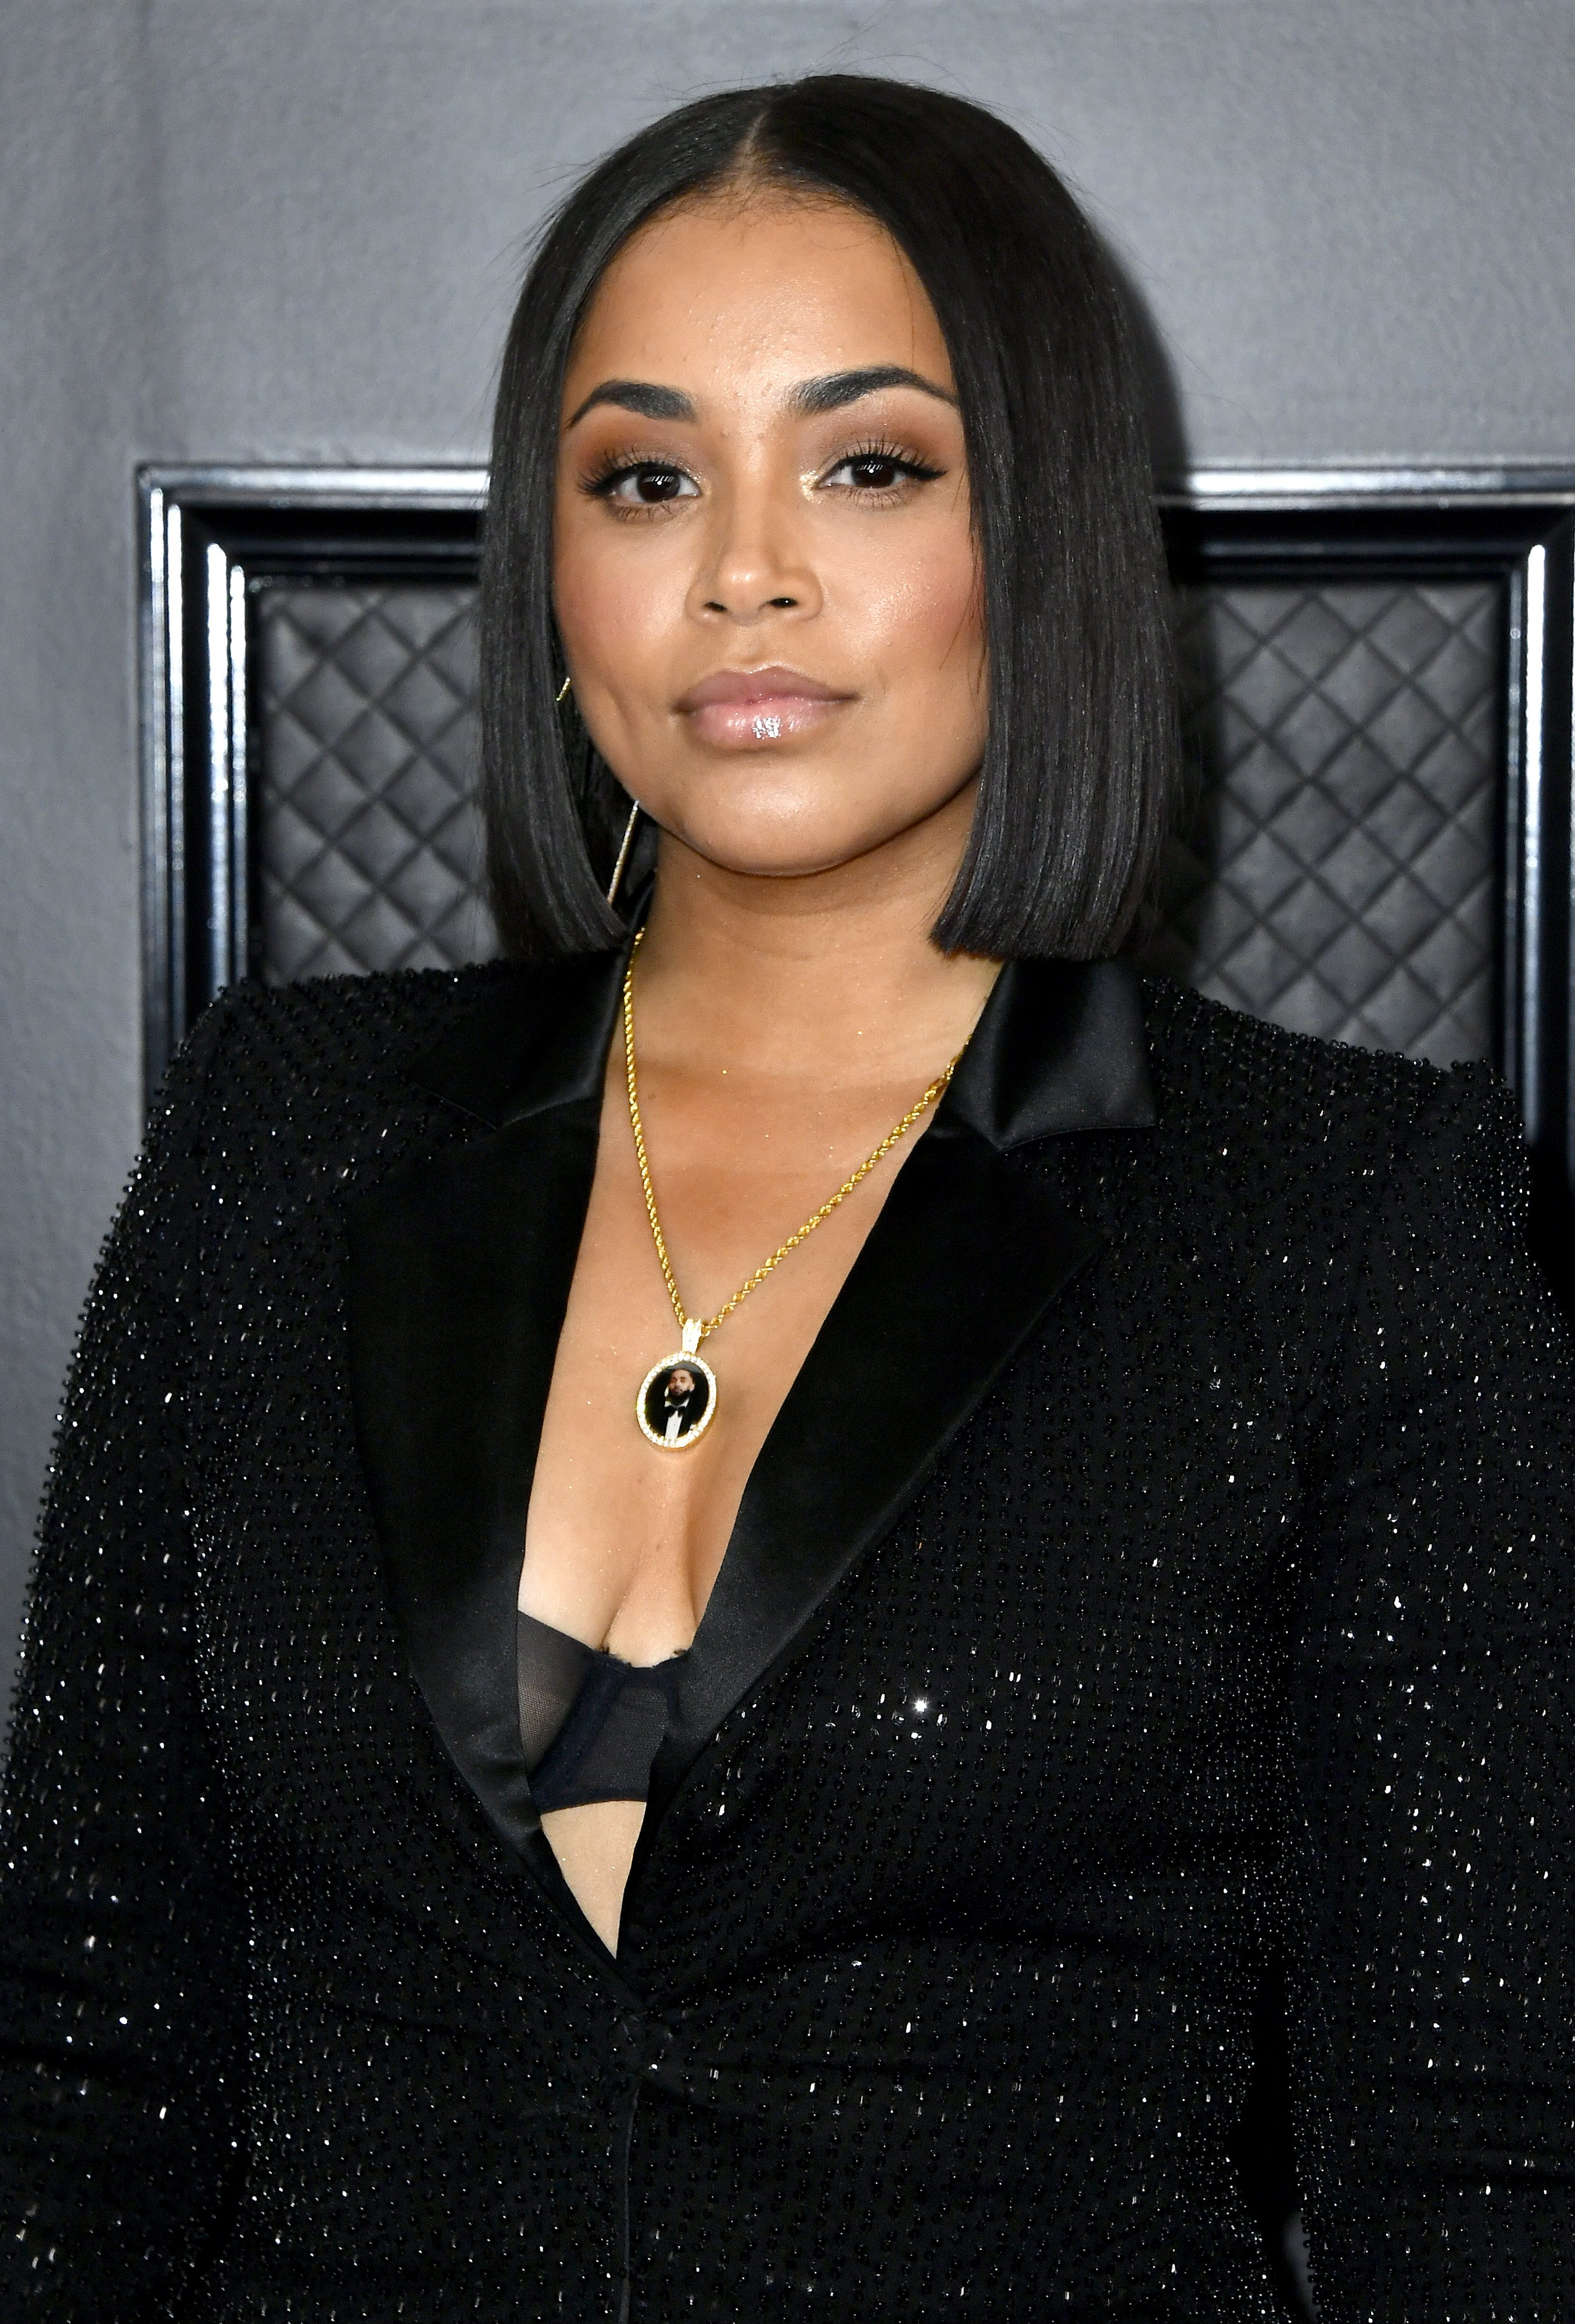 Lauren London at the 62nd Annual Grammy Awards at Staples Center on January 26, 2020 in Los Angeles, California.| Source: Getty Images